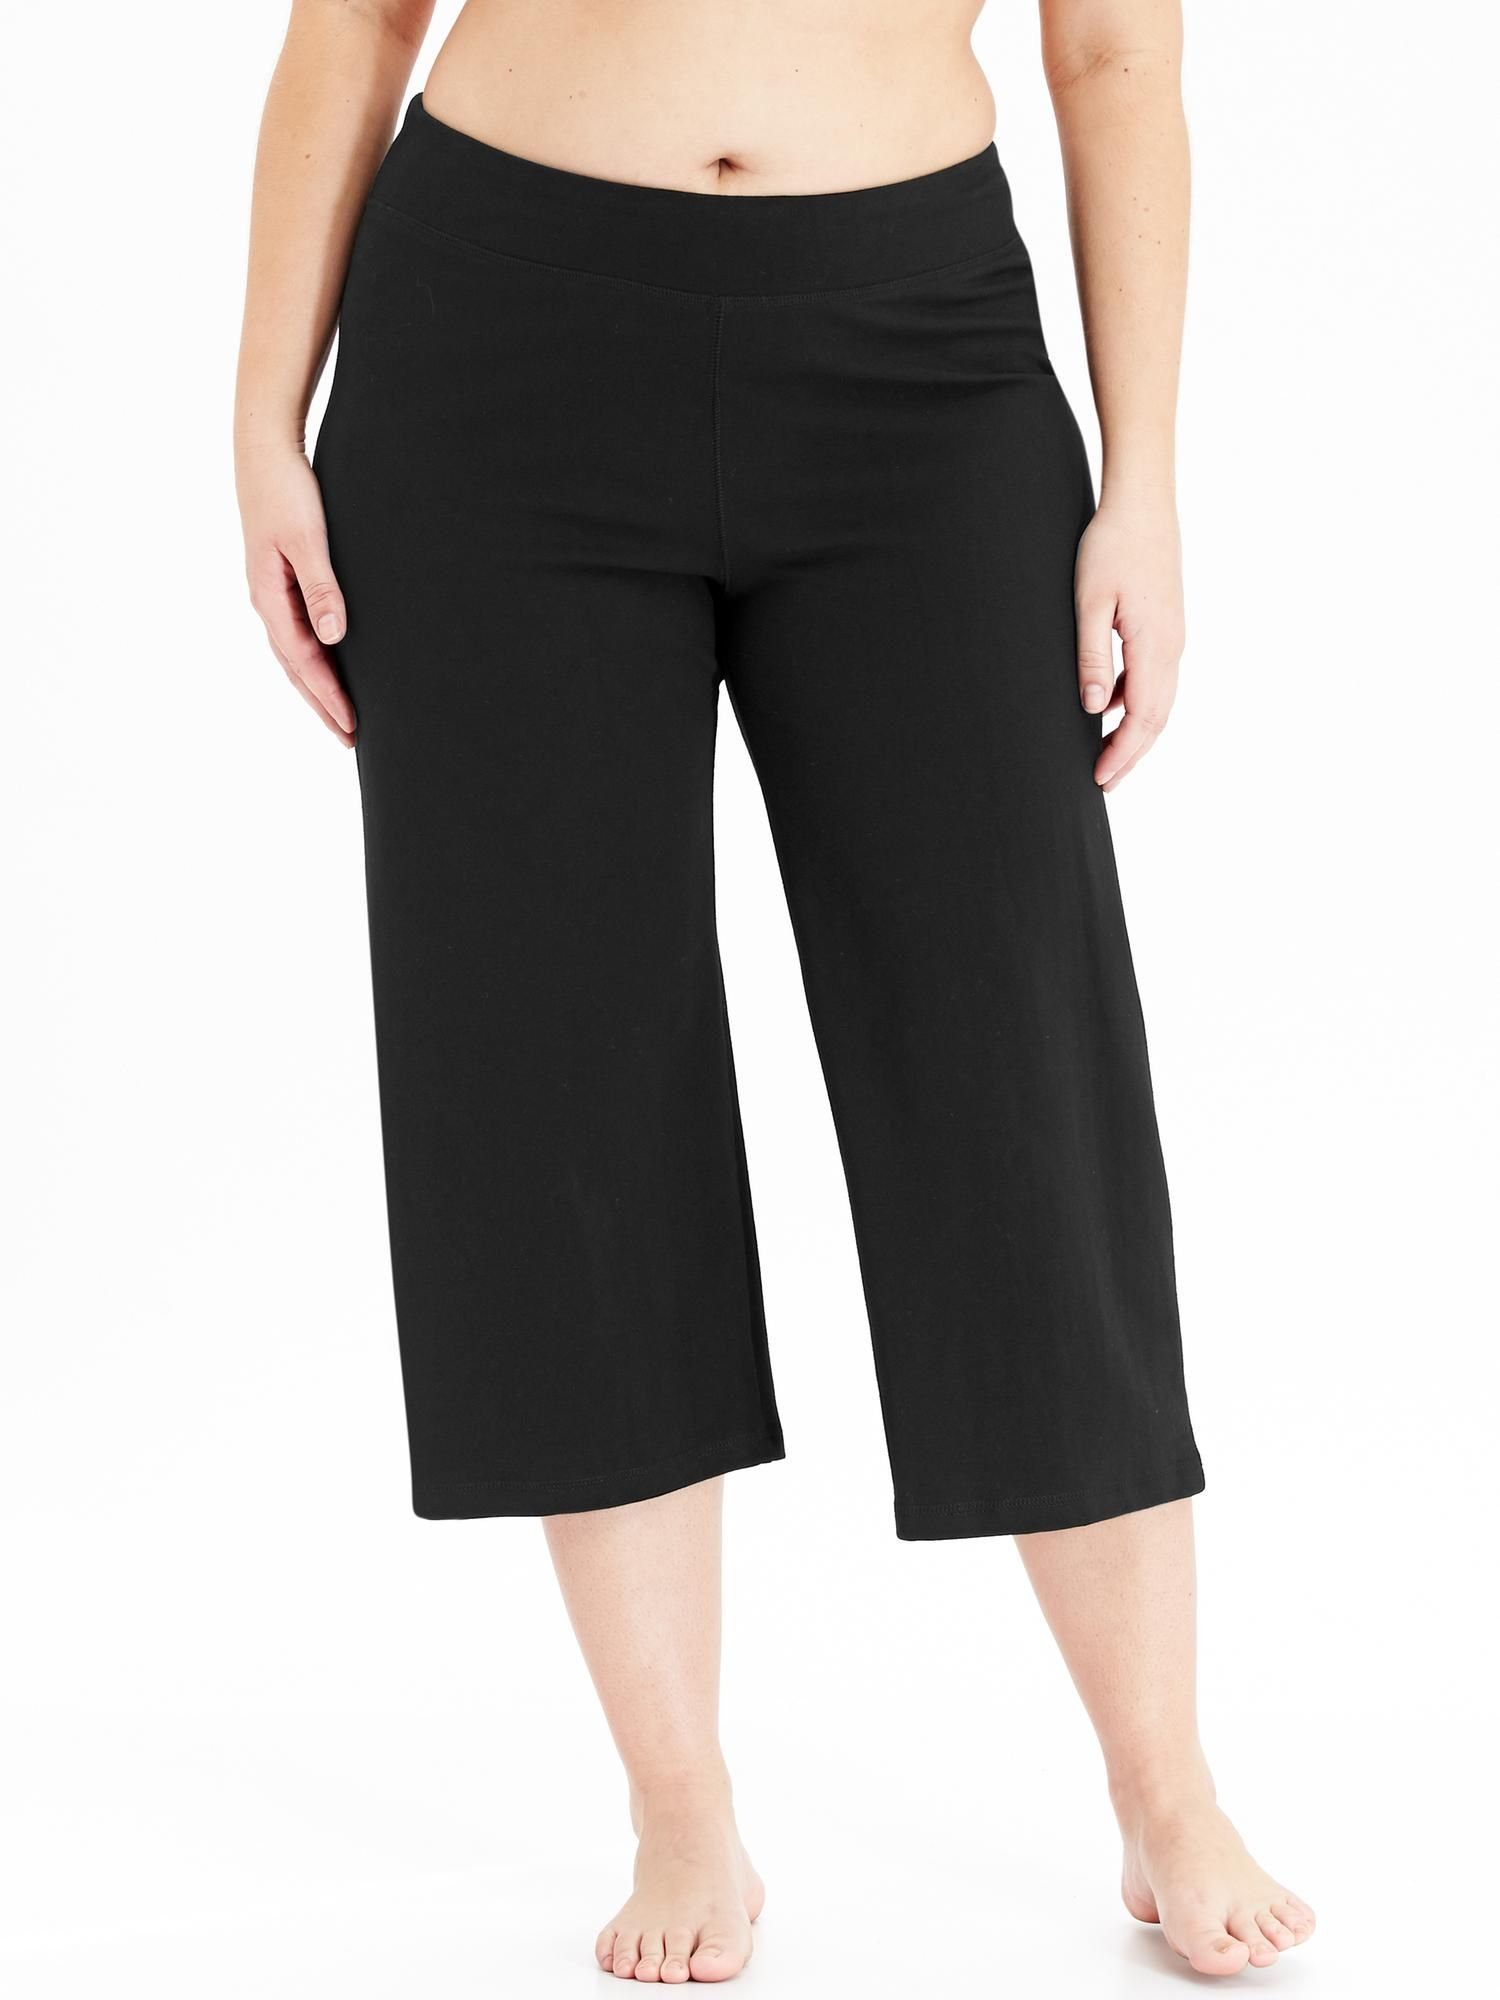 GoDry PlusSize Yoga Crops Old Navy (With images